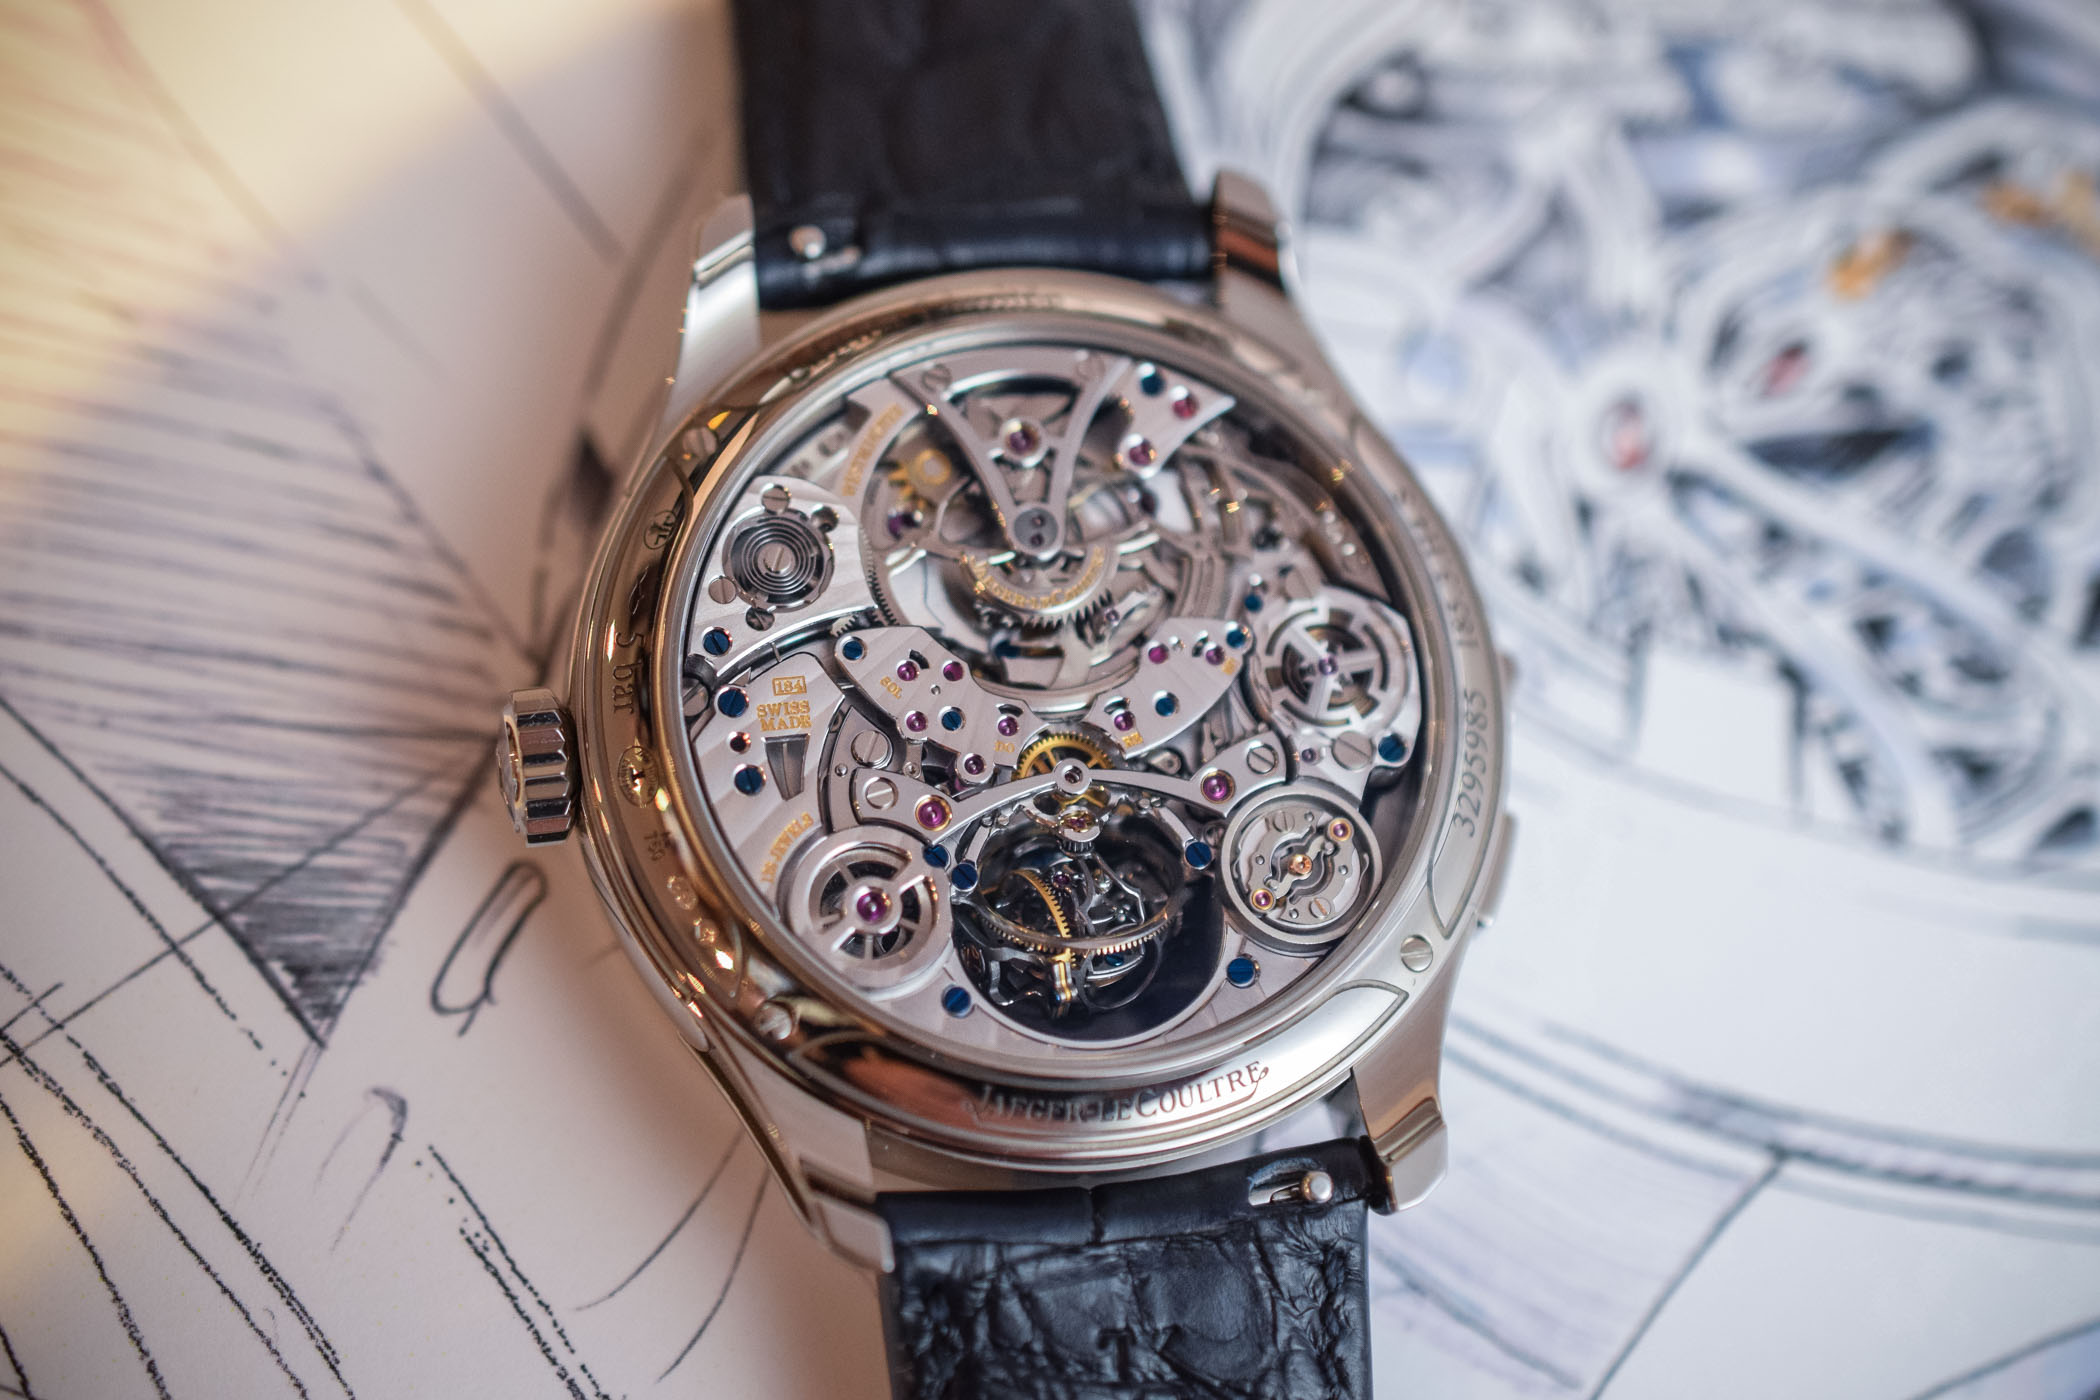 Jaeger LeCoultre SIHH 2019 - 6